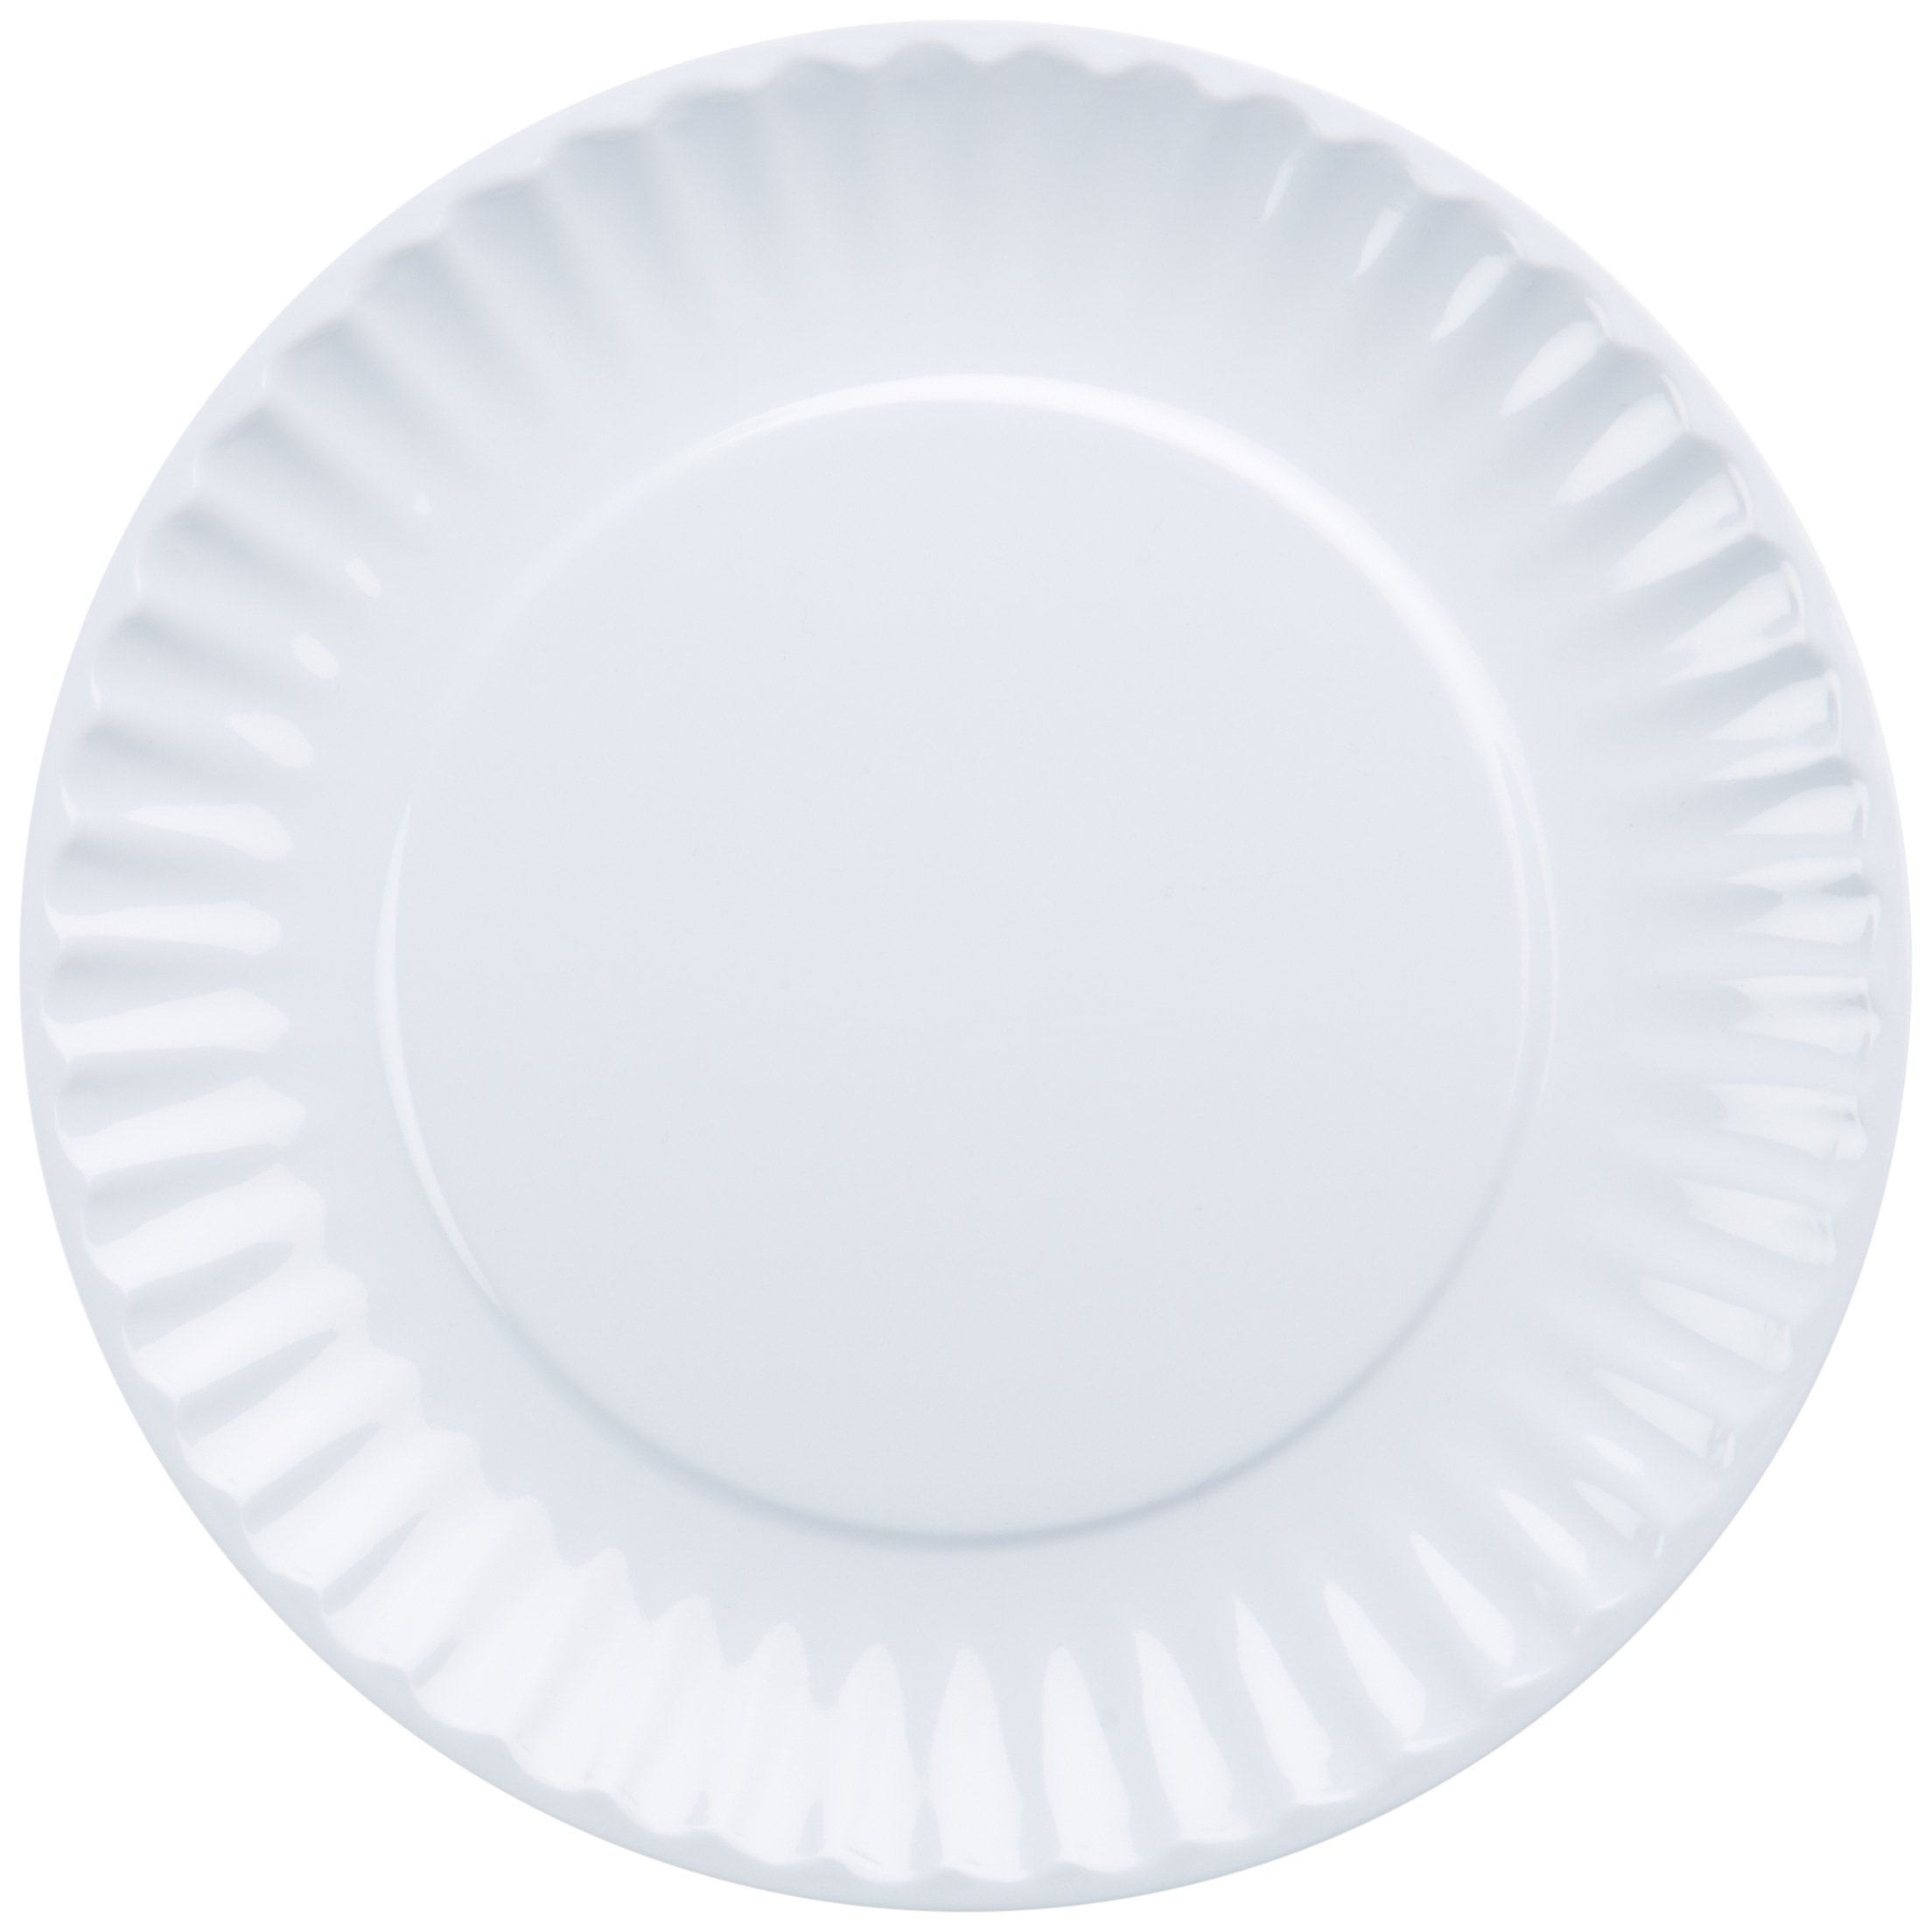 DII Melamine Reusable Party or Picnic Plate, White, Set of 12 by DII